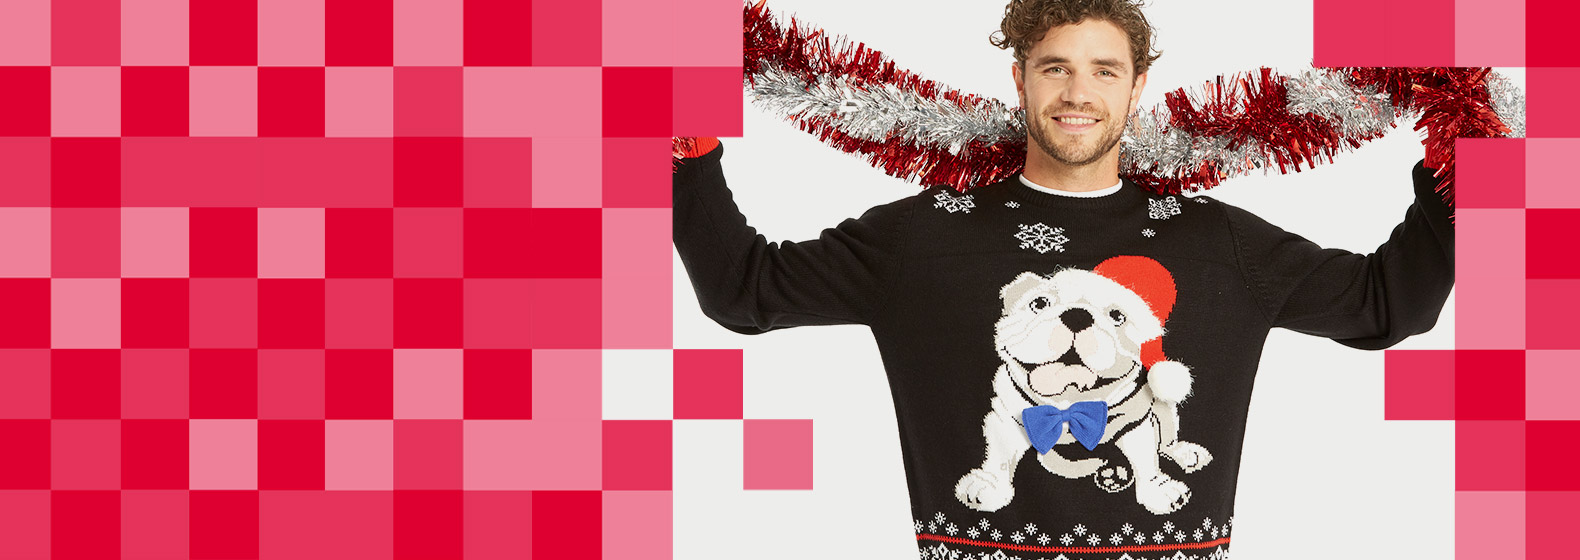 Cyber Monday - 50% Off Christmas Looks